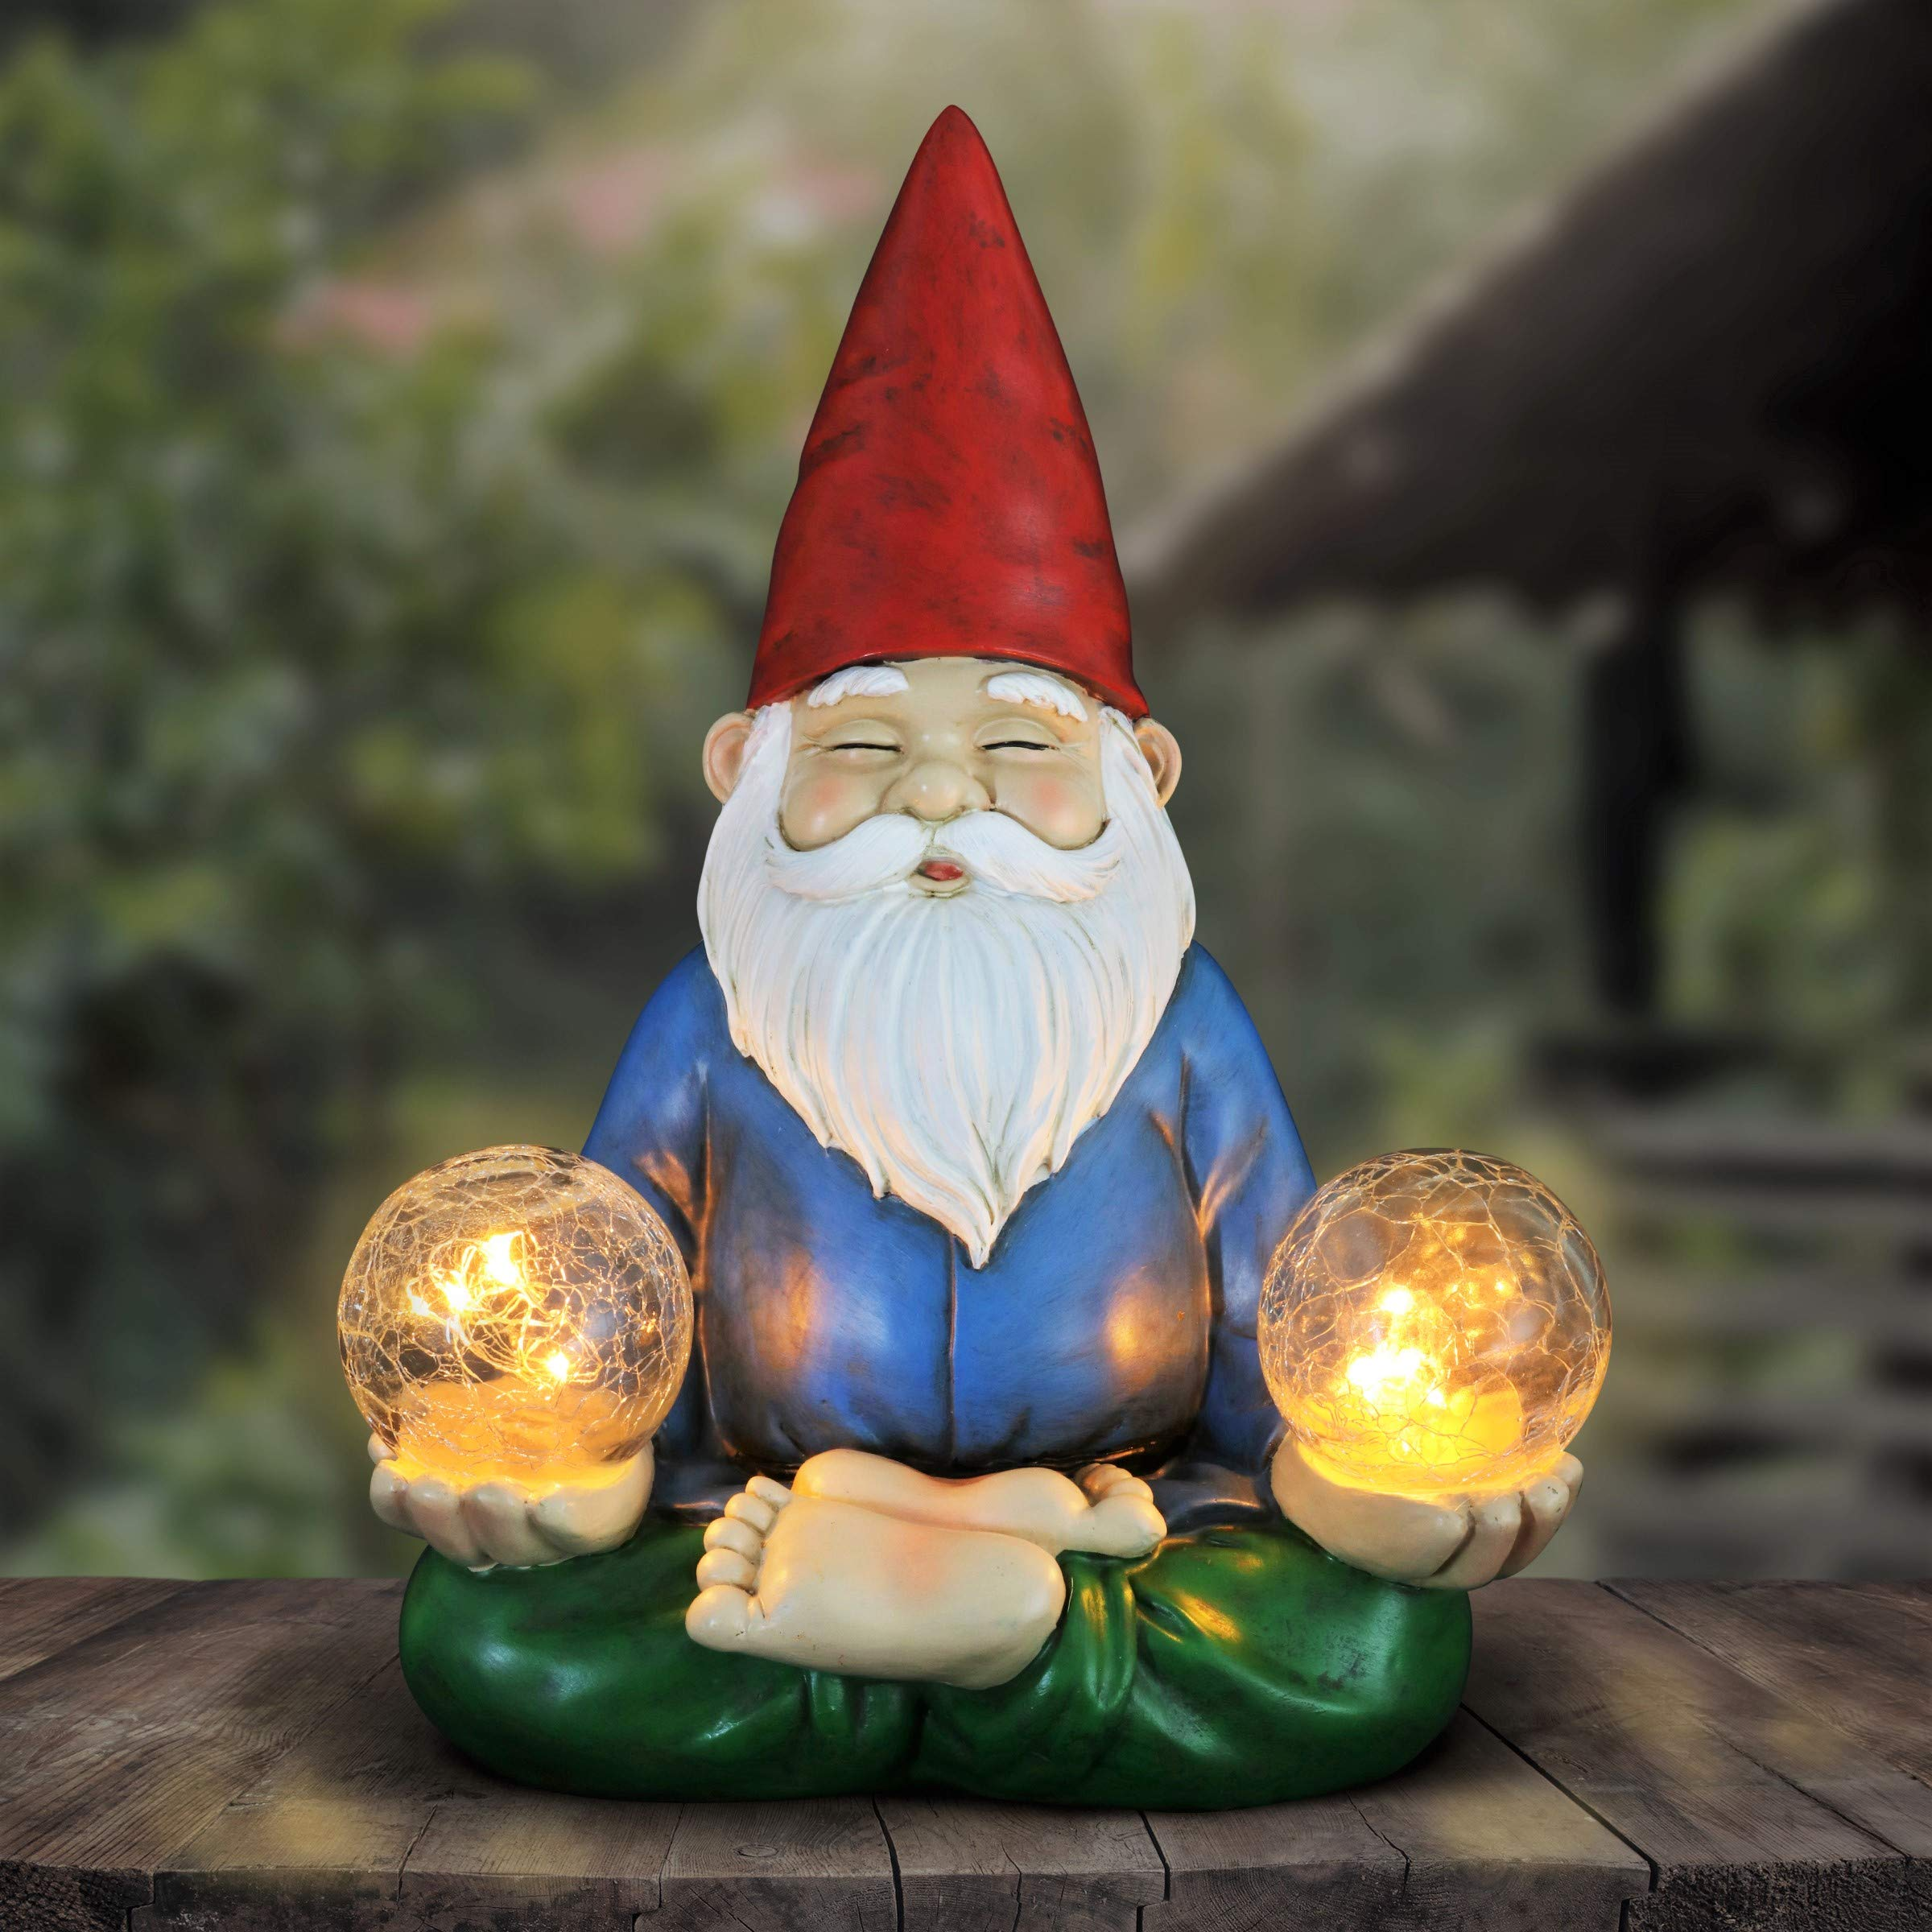 Exhart Solar Yoga Garden Gnome Holding 2 Glass Balls Garden Statue - Hand-Painted Outdoor Statue of a Gnome in Cross-Legged Meditation Pose w/Solar LED Lights Glass Orbs, 11'' Wide x 9'' Inches Tall